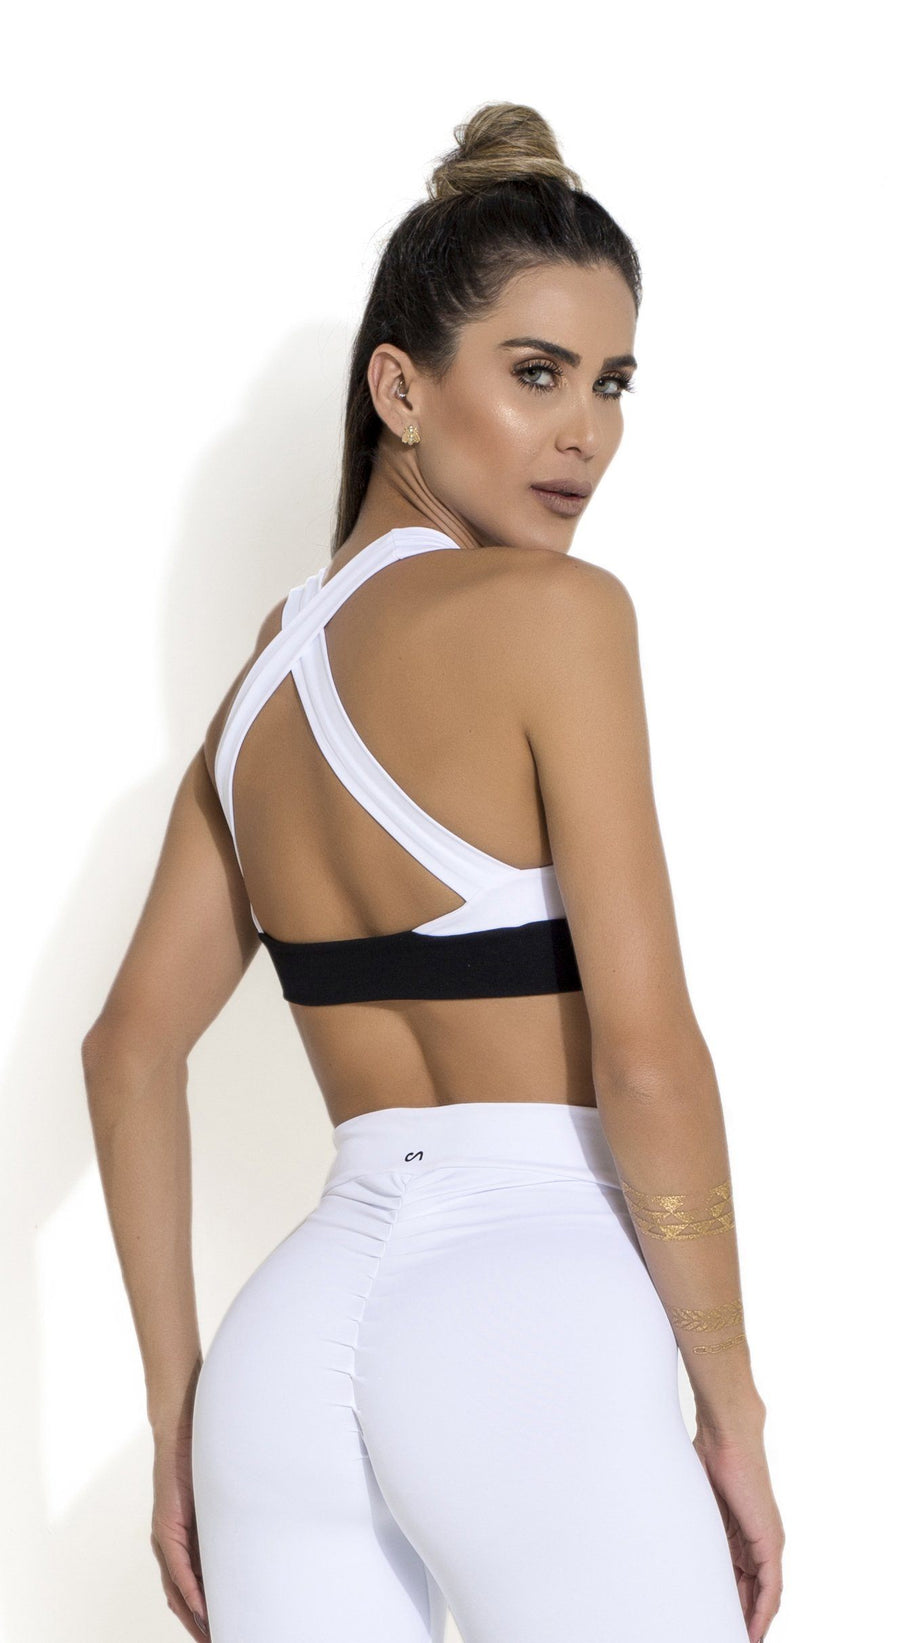 Brazilian Sports Bra - Padded Bra Black & White